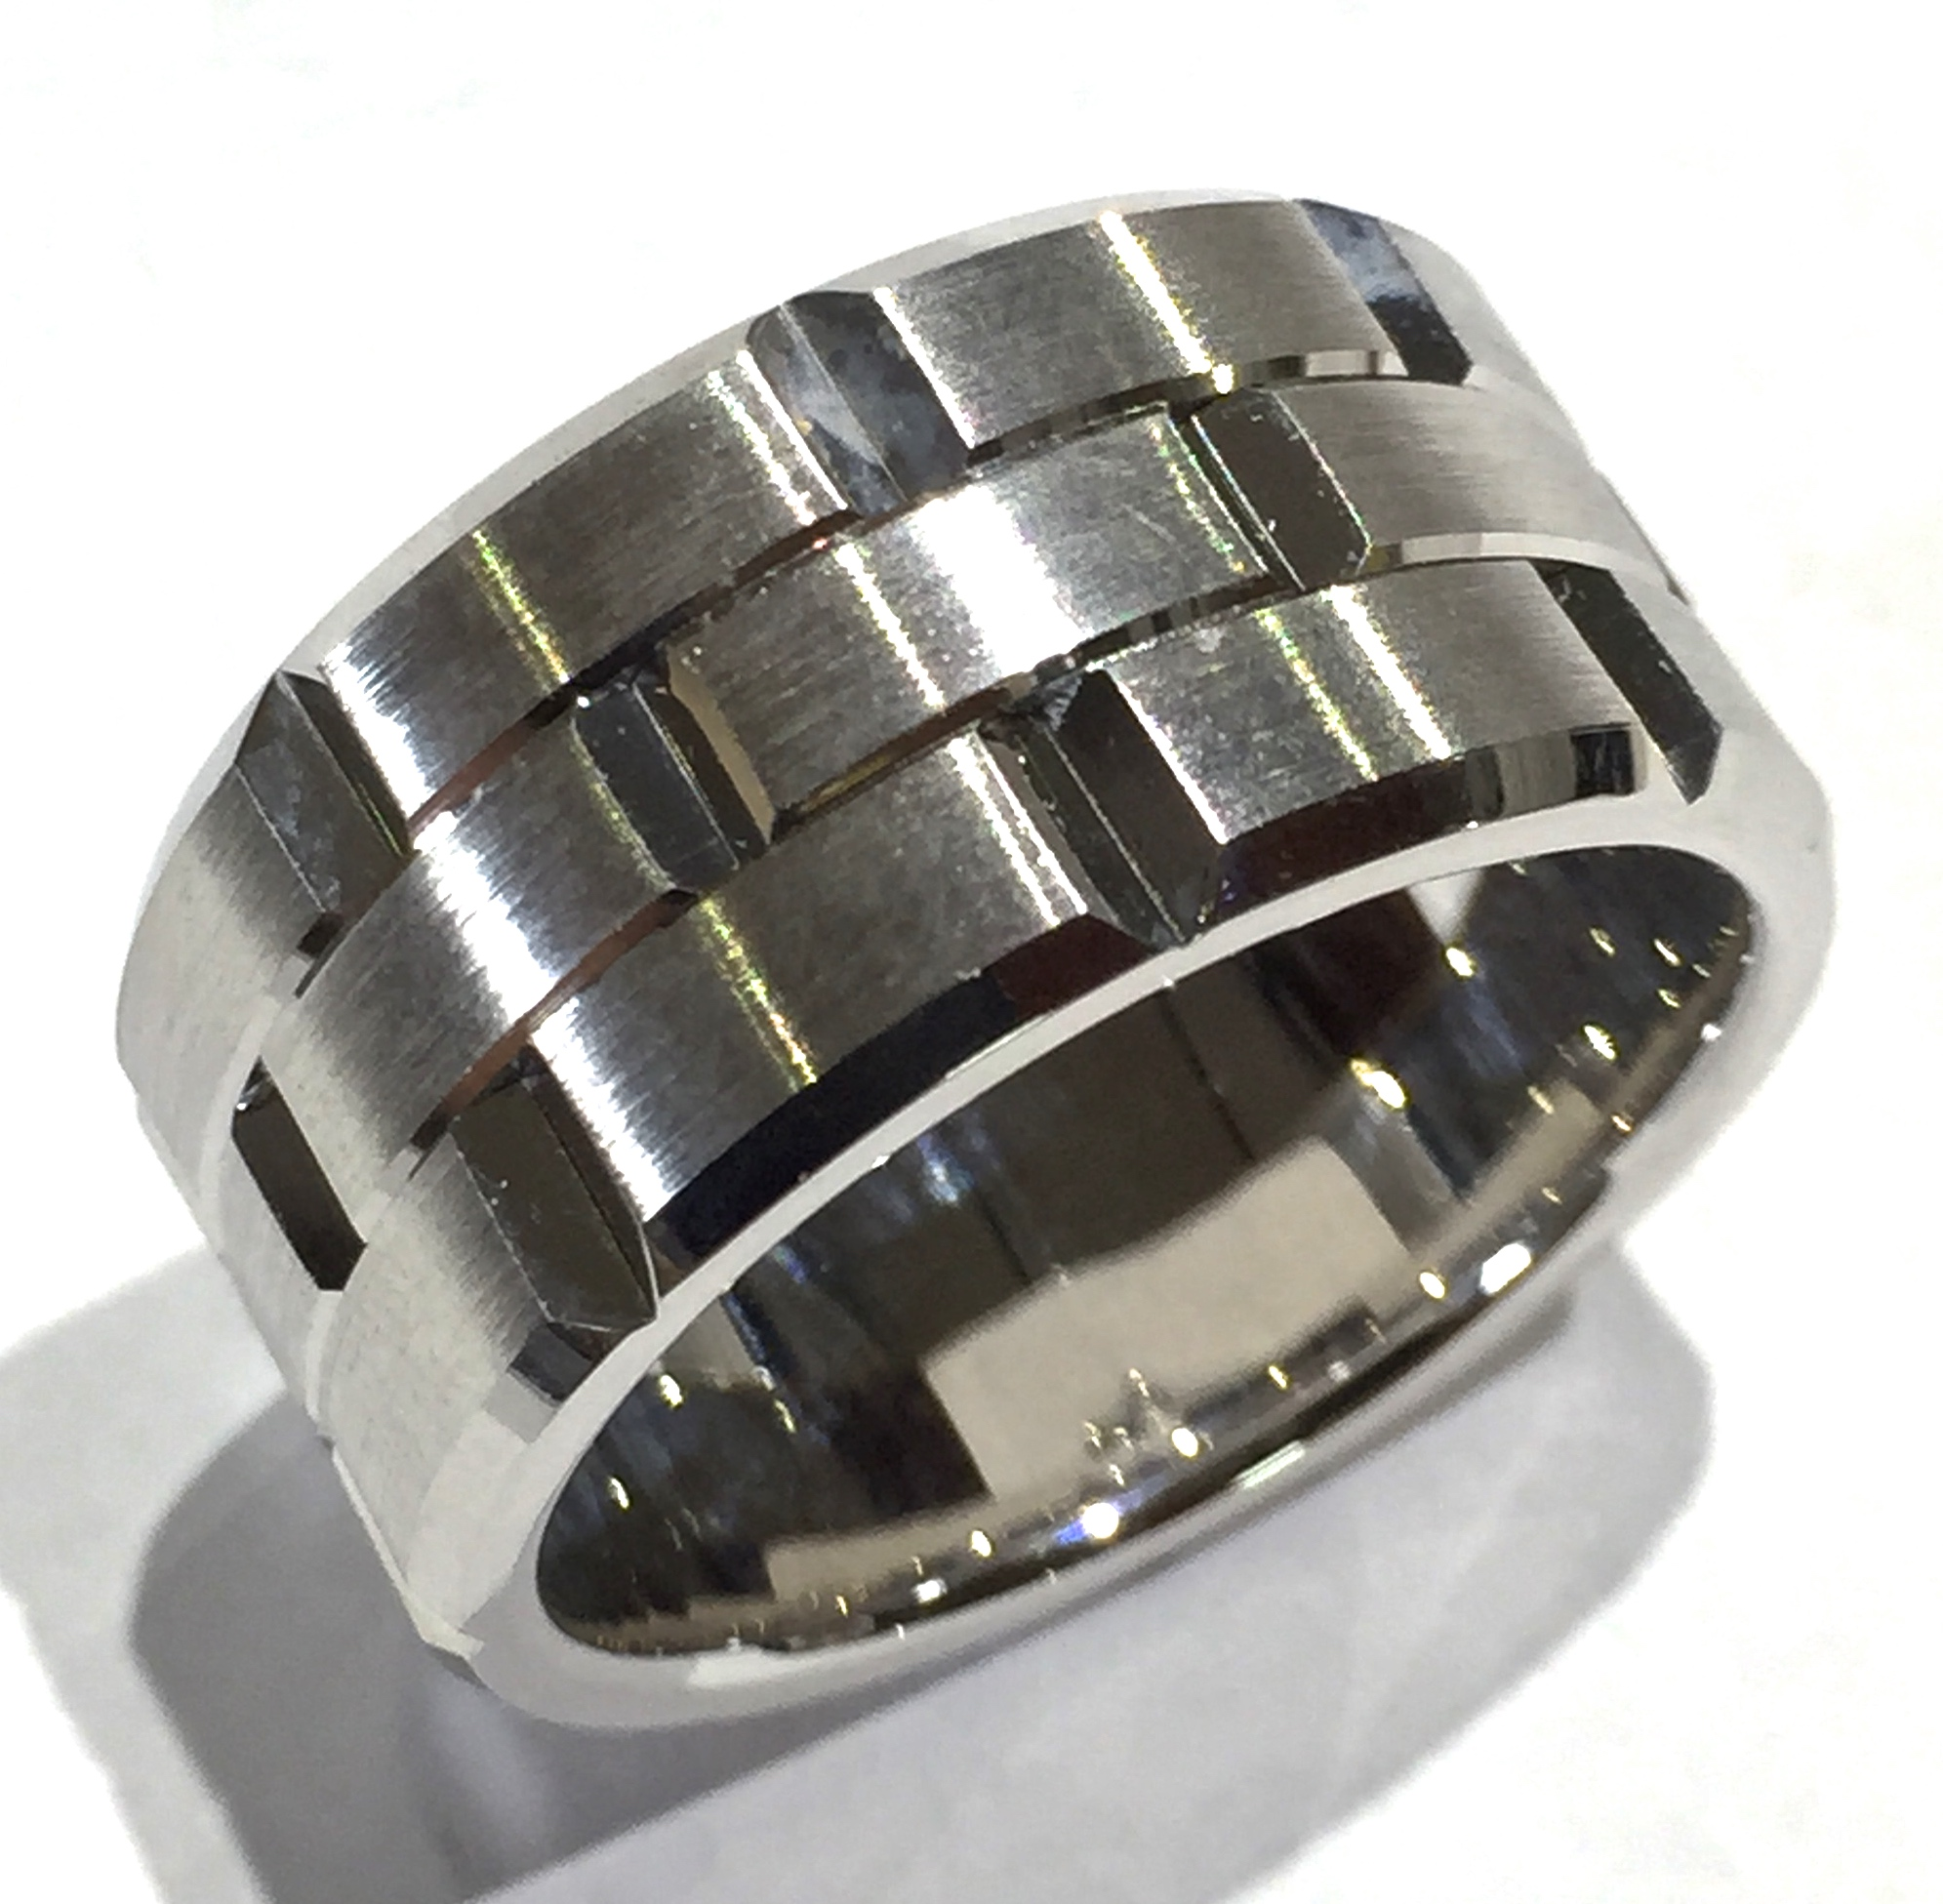 unique-modern-designed-textured-gents-band-mens-wedding-ring-craft-revival-jewelry-store-grand-rapids